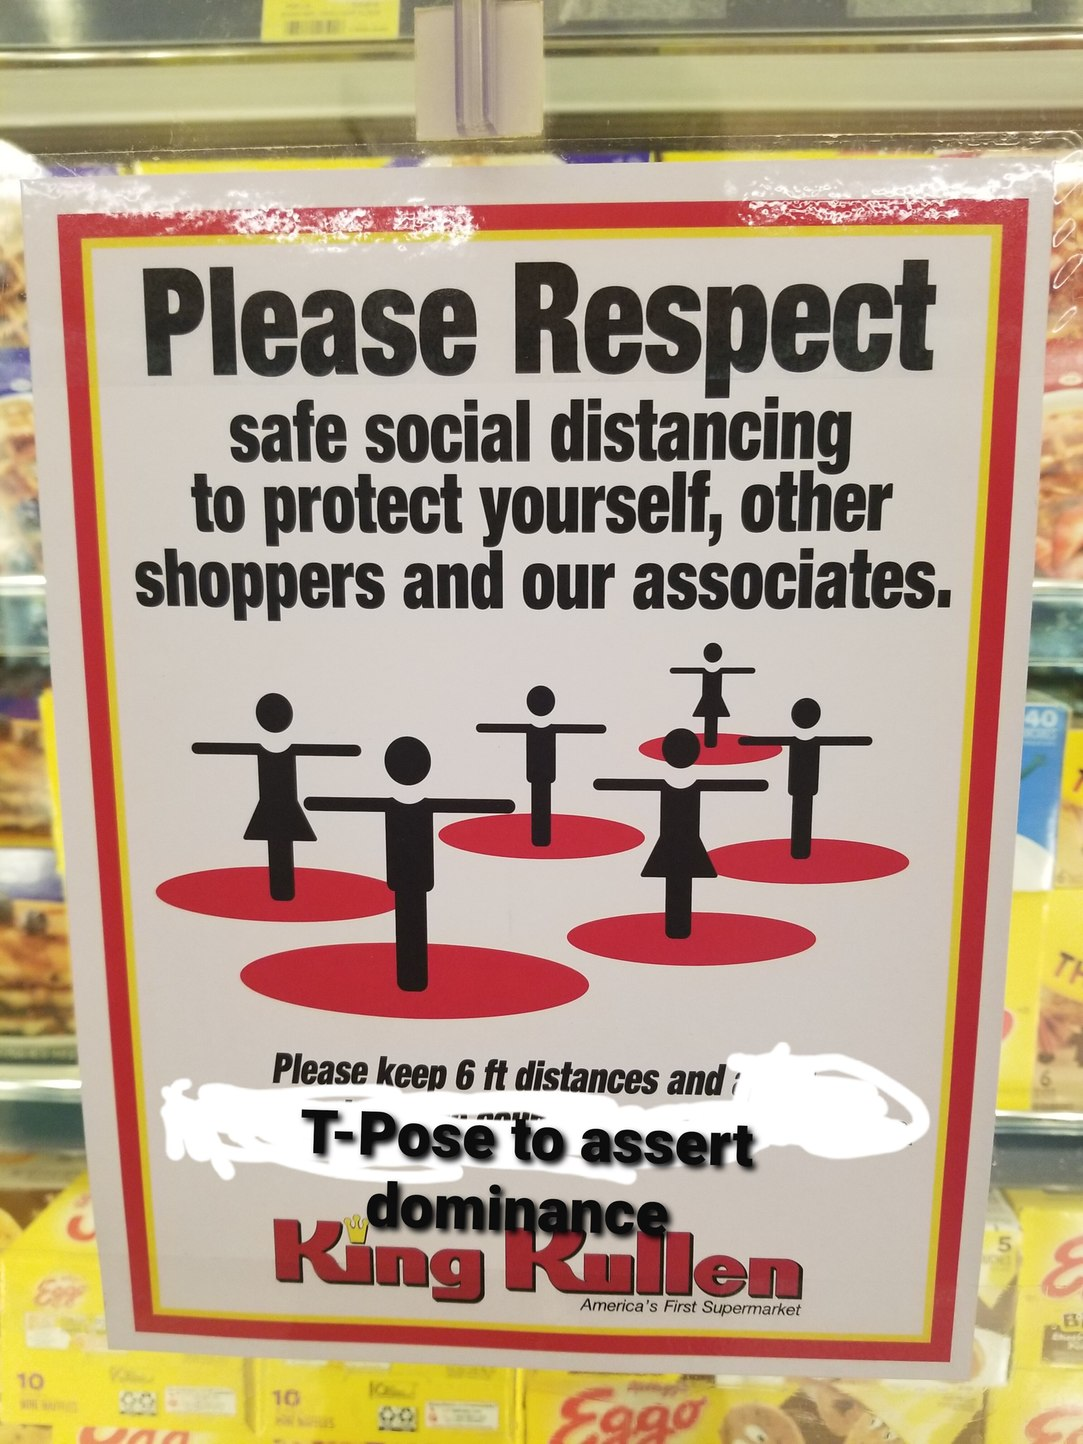 If you start T-posing I'm sure others will avoid you - meme